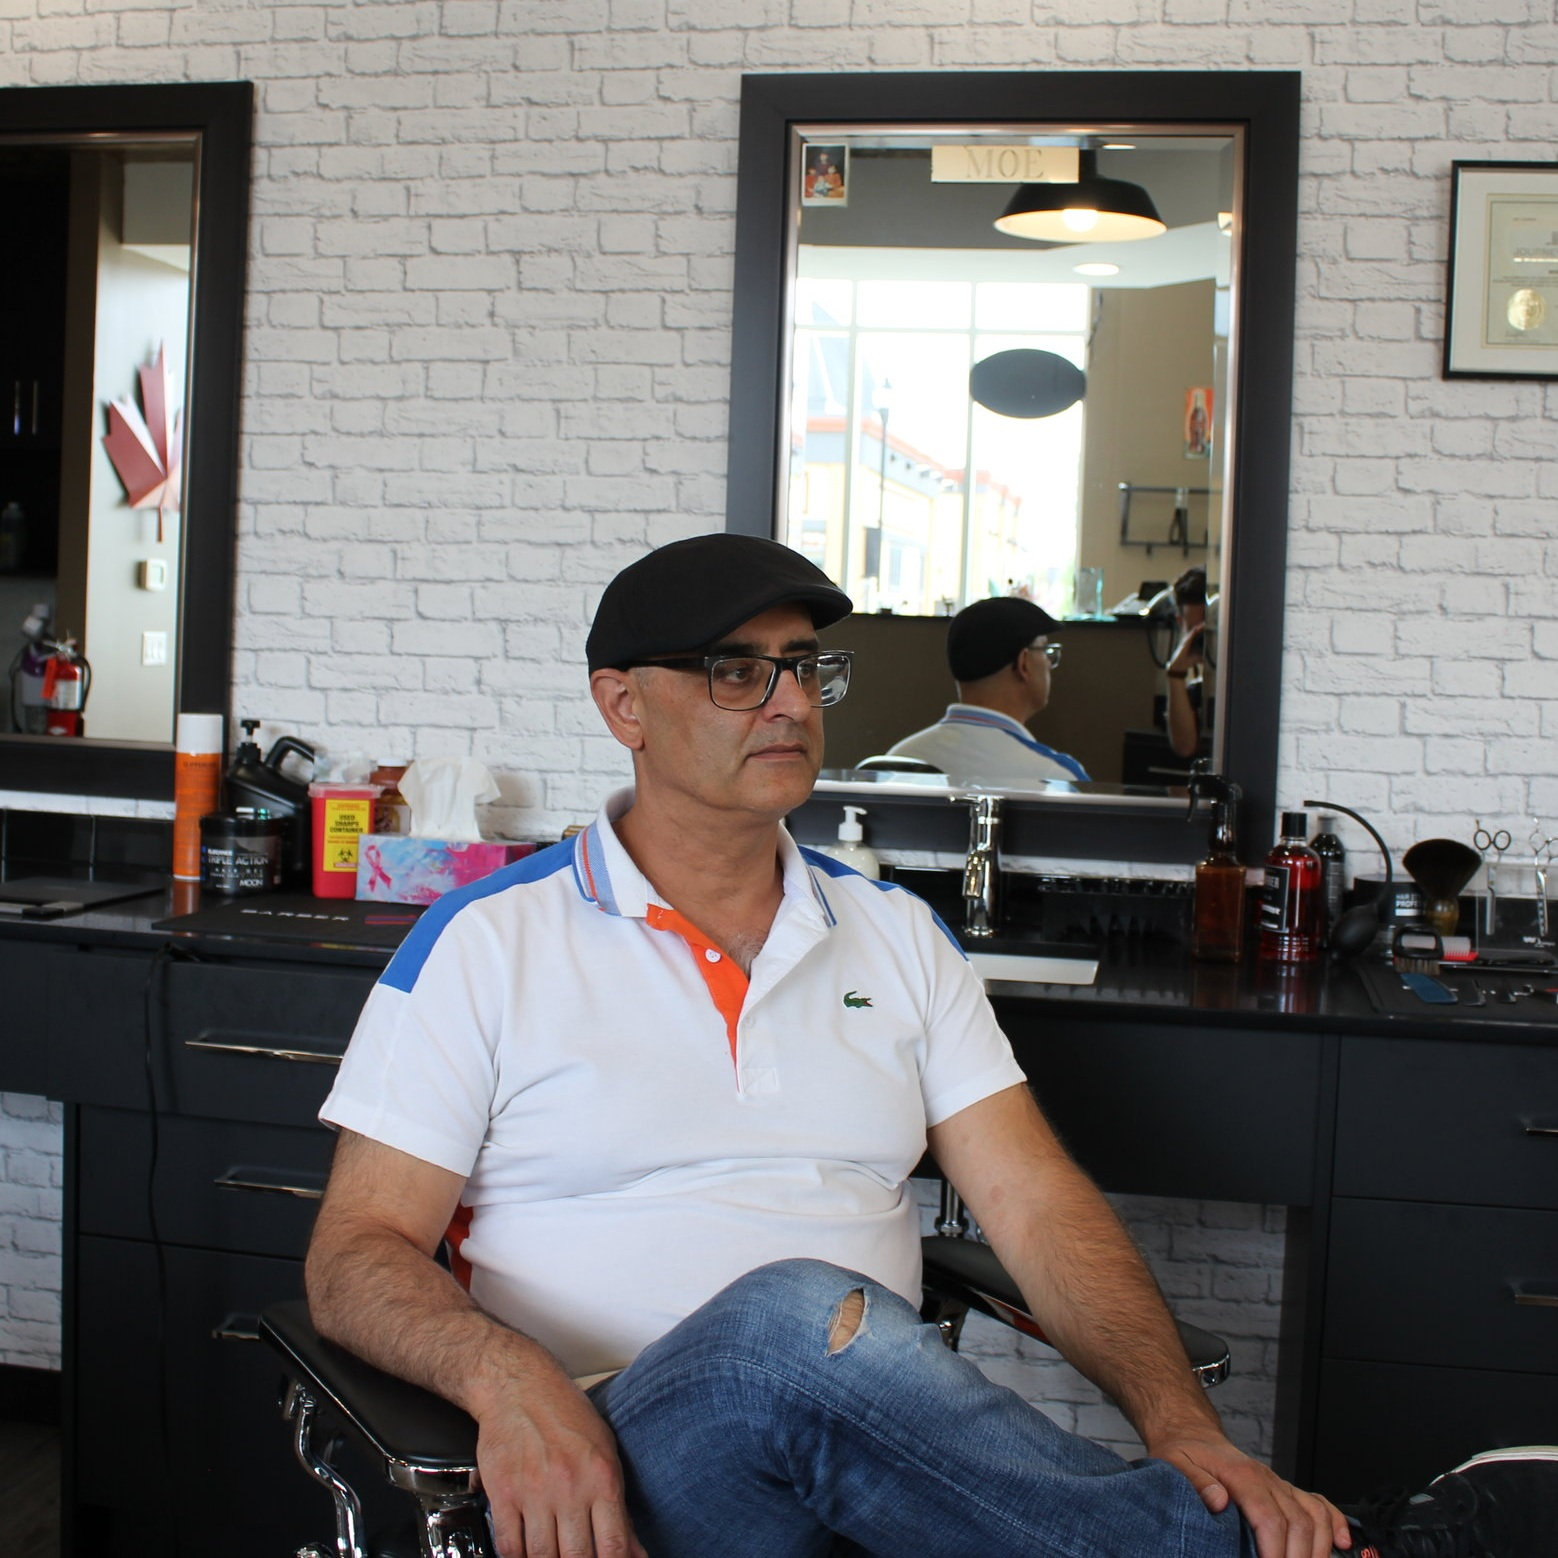 Moe KharfanOwneR - With over 12 years of experience and his Canadian Red Seal in hairstyling, you can trust that Moe will give you a great haircut that will meet your highest expectations. Moe believes in customer care and great services, pays careful attention to his clients, and has earned their continuous trust.